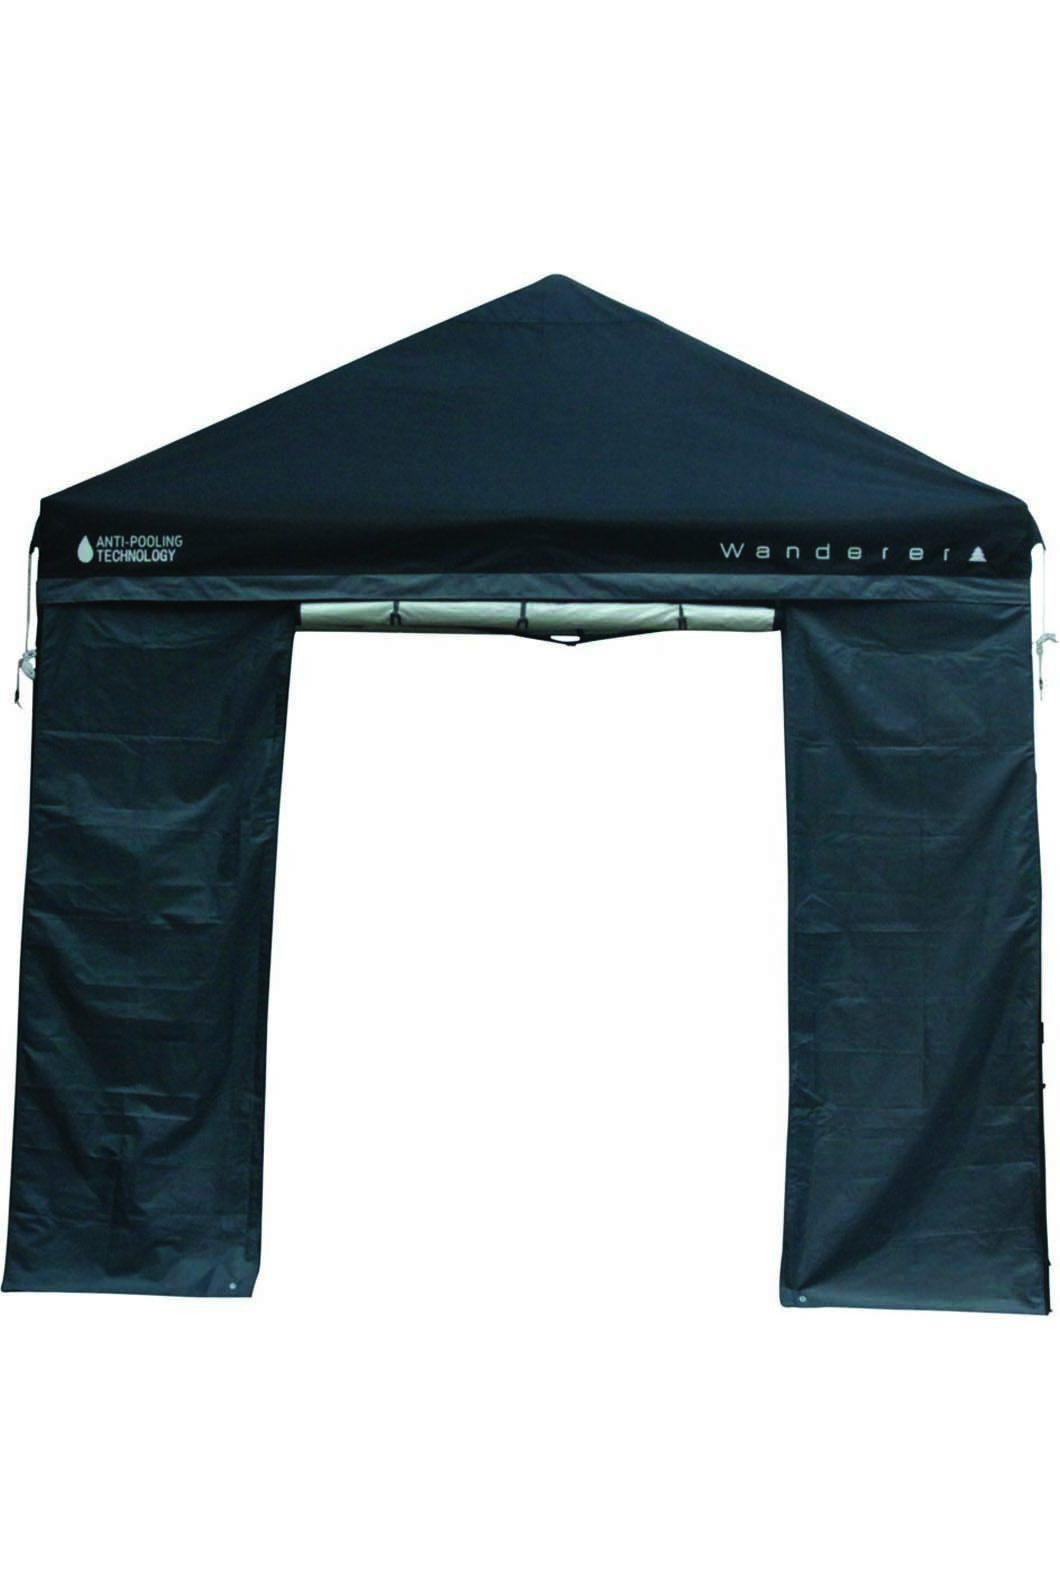 Wanderer Gazebo 3x3m DLX Wall with Door, None, hi-res